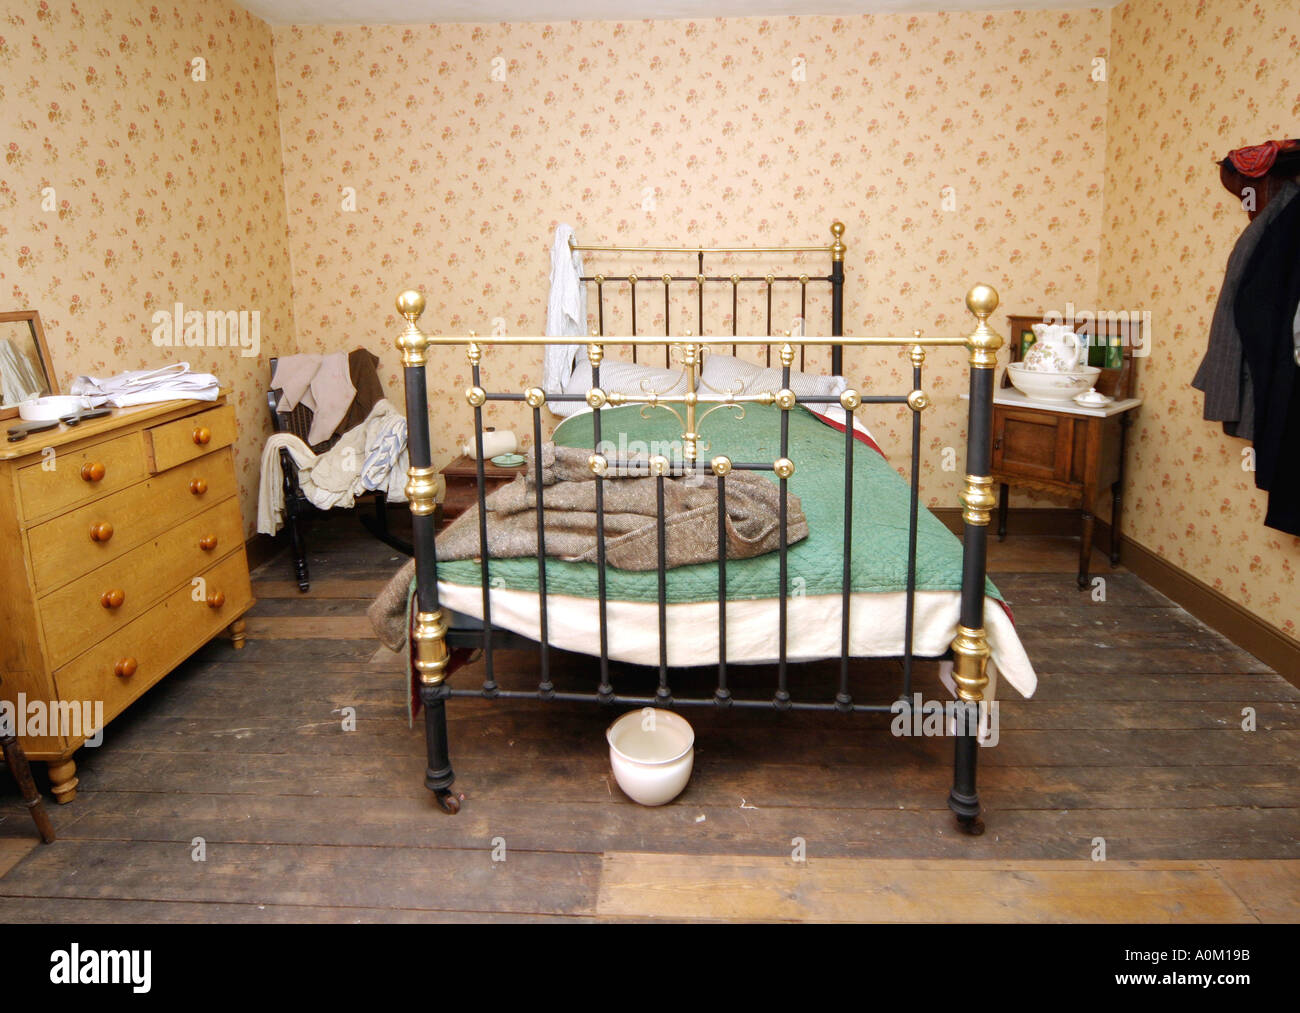 A bedroom in a back to back house on the corner of Inge Street and Hurst Street Birmingham England - Stock Image